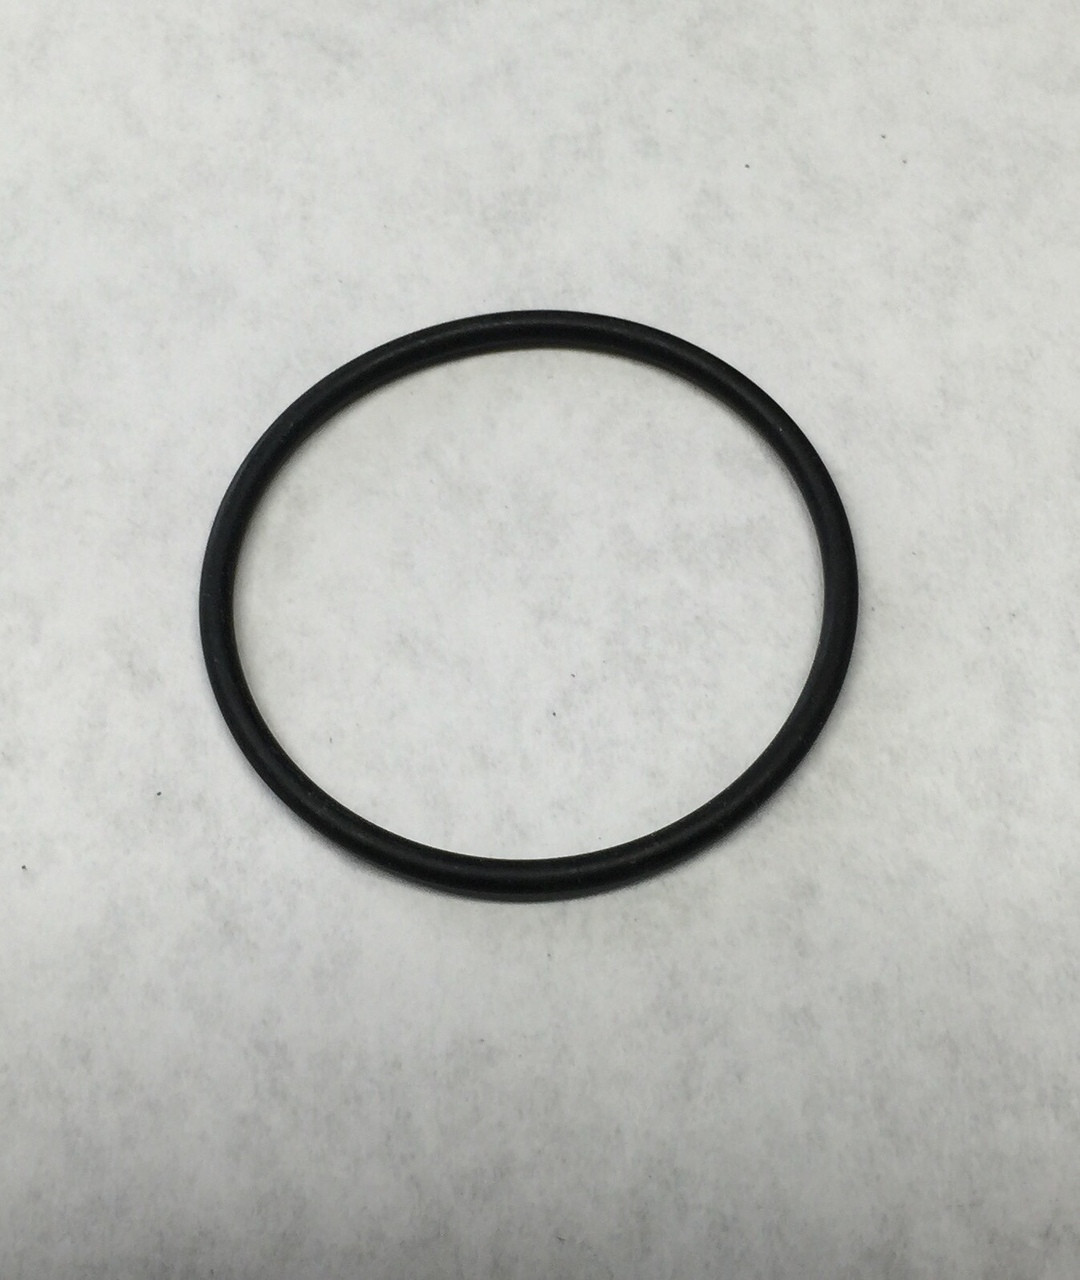 Talsa H-269 - H Series - O-Ring for Part # Tal-7327 - 4013